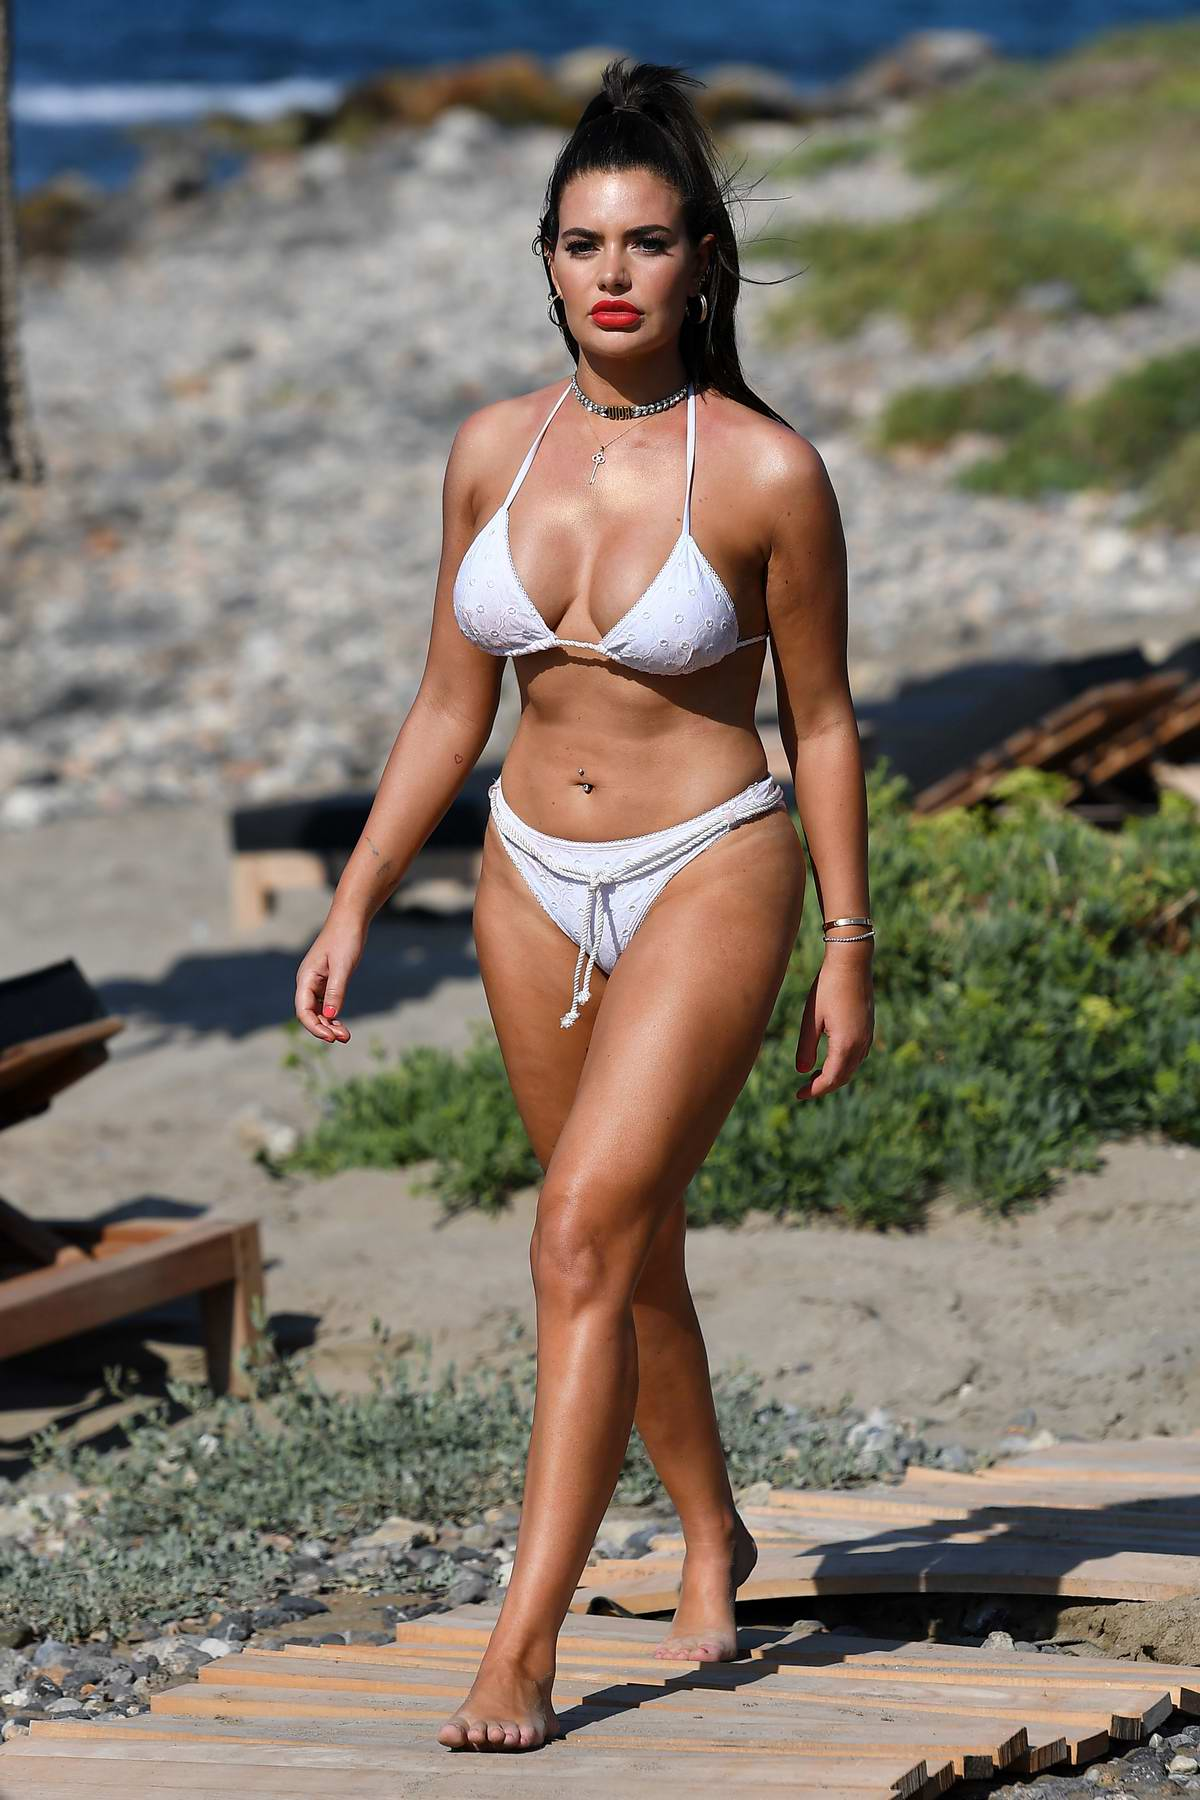 Megan Barton-Hanson sizzles in a white bikini while on the set of 'Celebs Go Dating' TV show in Crete, Greece